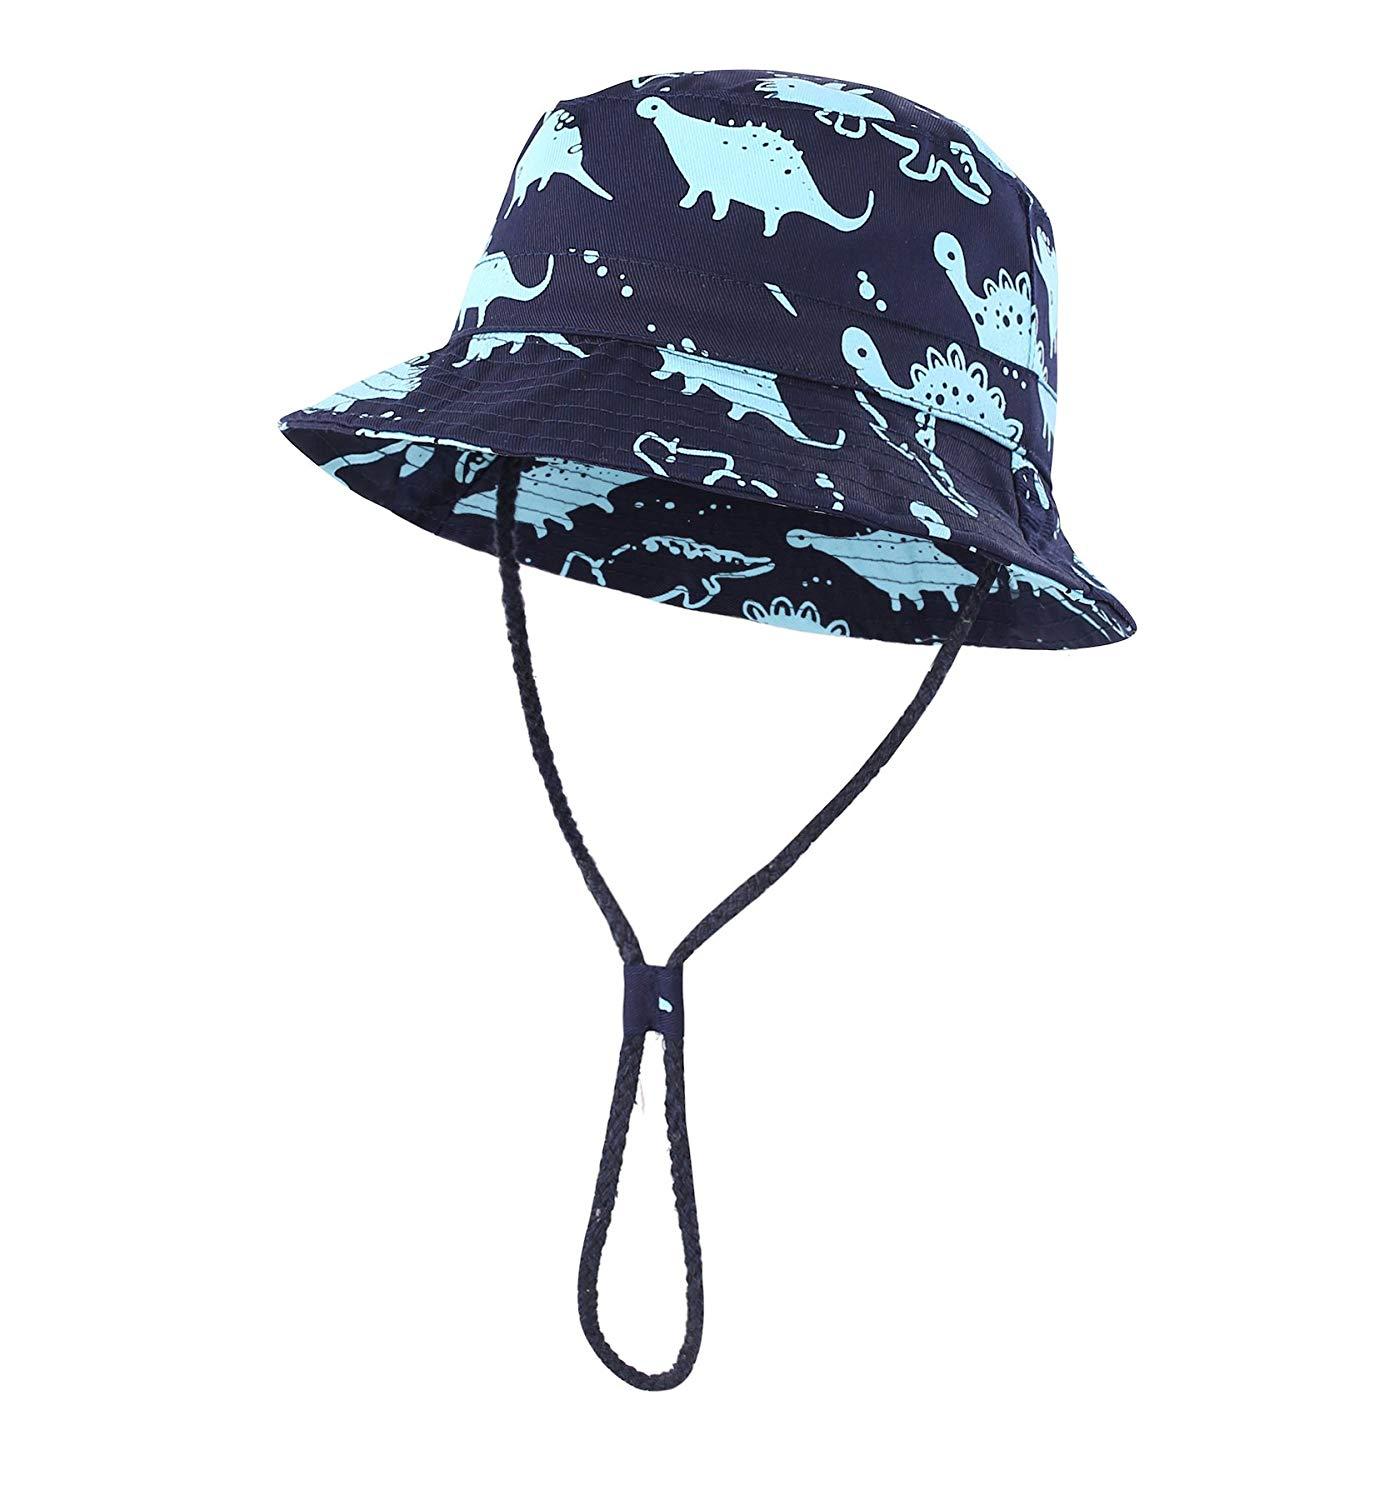 062a4238daa8f Get Quotations · Home Prefer Toddler Boy Kids Sun Hat Cotton Bucket Hat  Cute Dinosaur Fishing Hat